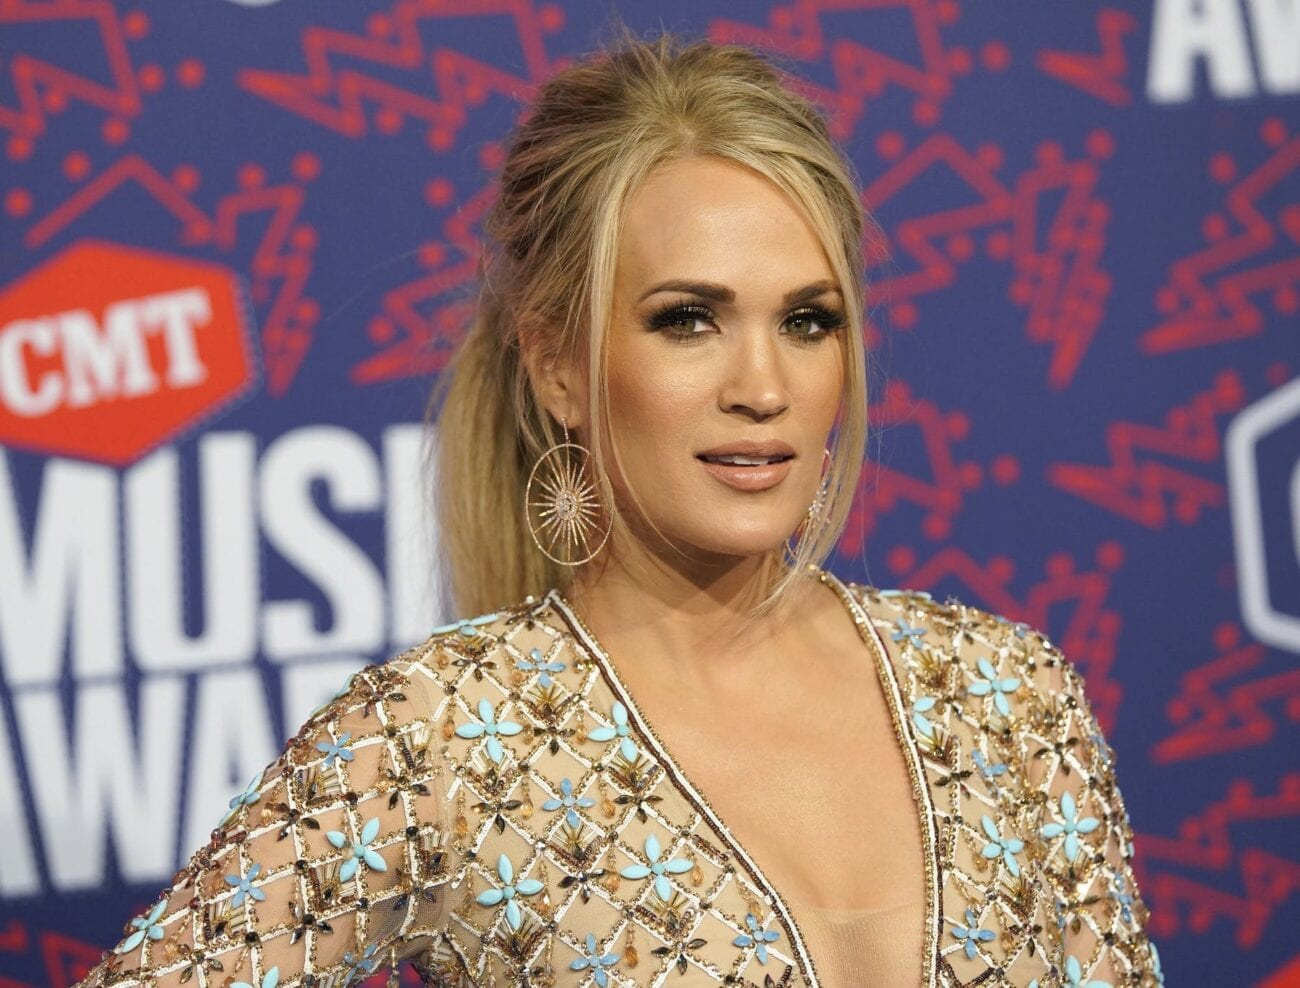 Were you getting starry-eyed watching the 2020 CMA Awards? These country music stars caught our eye by dressing to the nines.